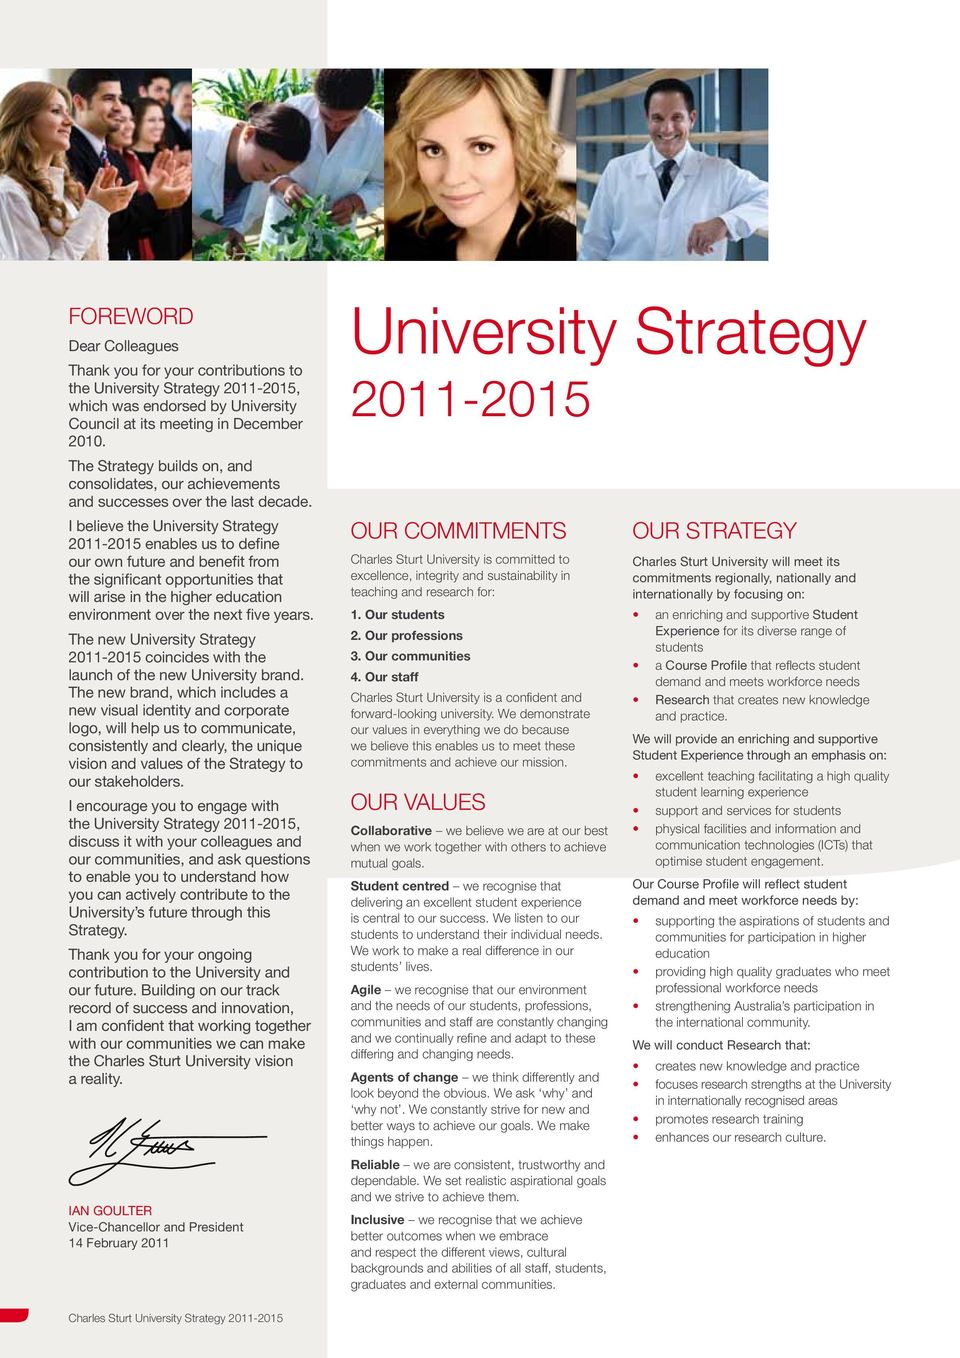 I believe the University Strategy 2011-2015 enables us to define our own future and benefit from the significant opportunities that will arise in the higher education environment over the next five